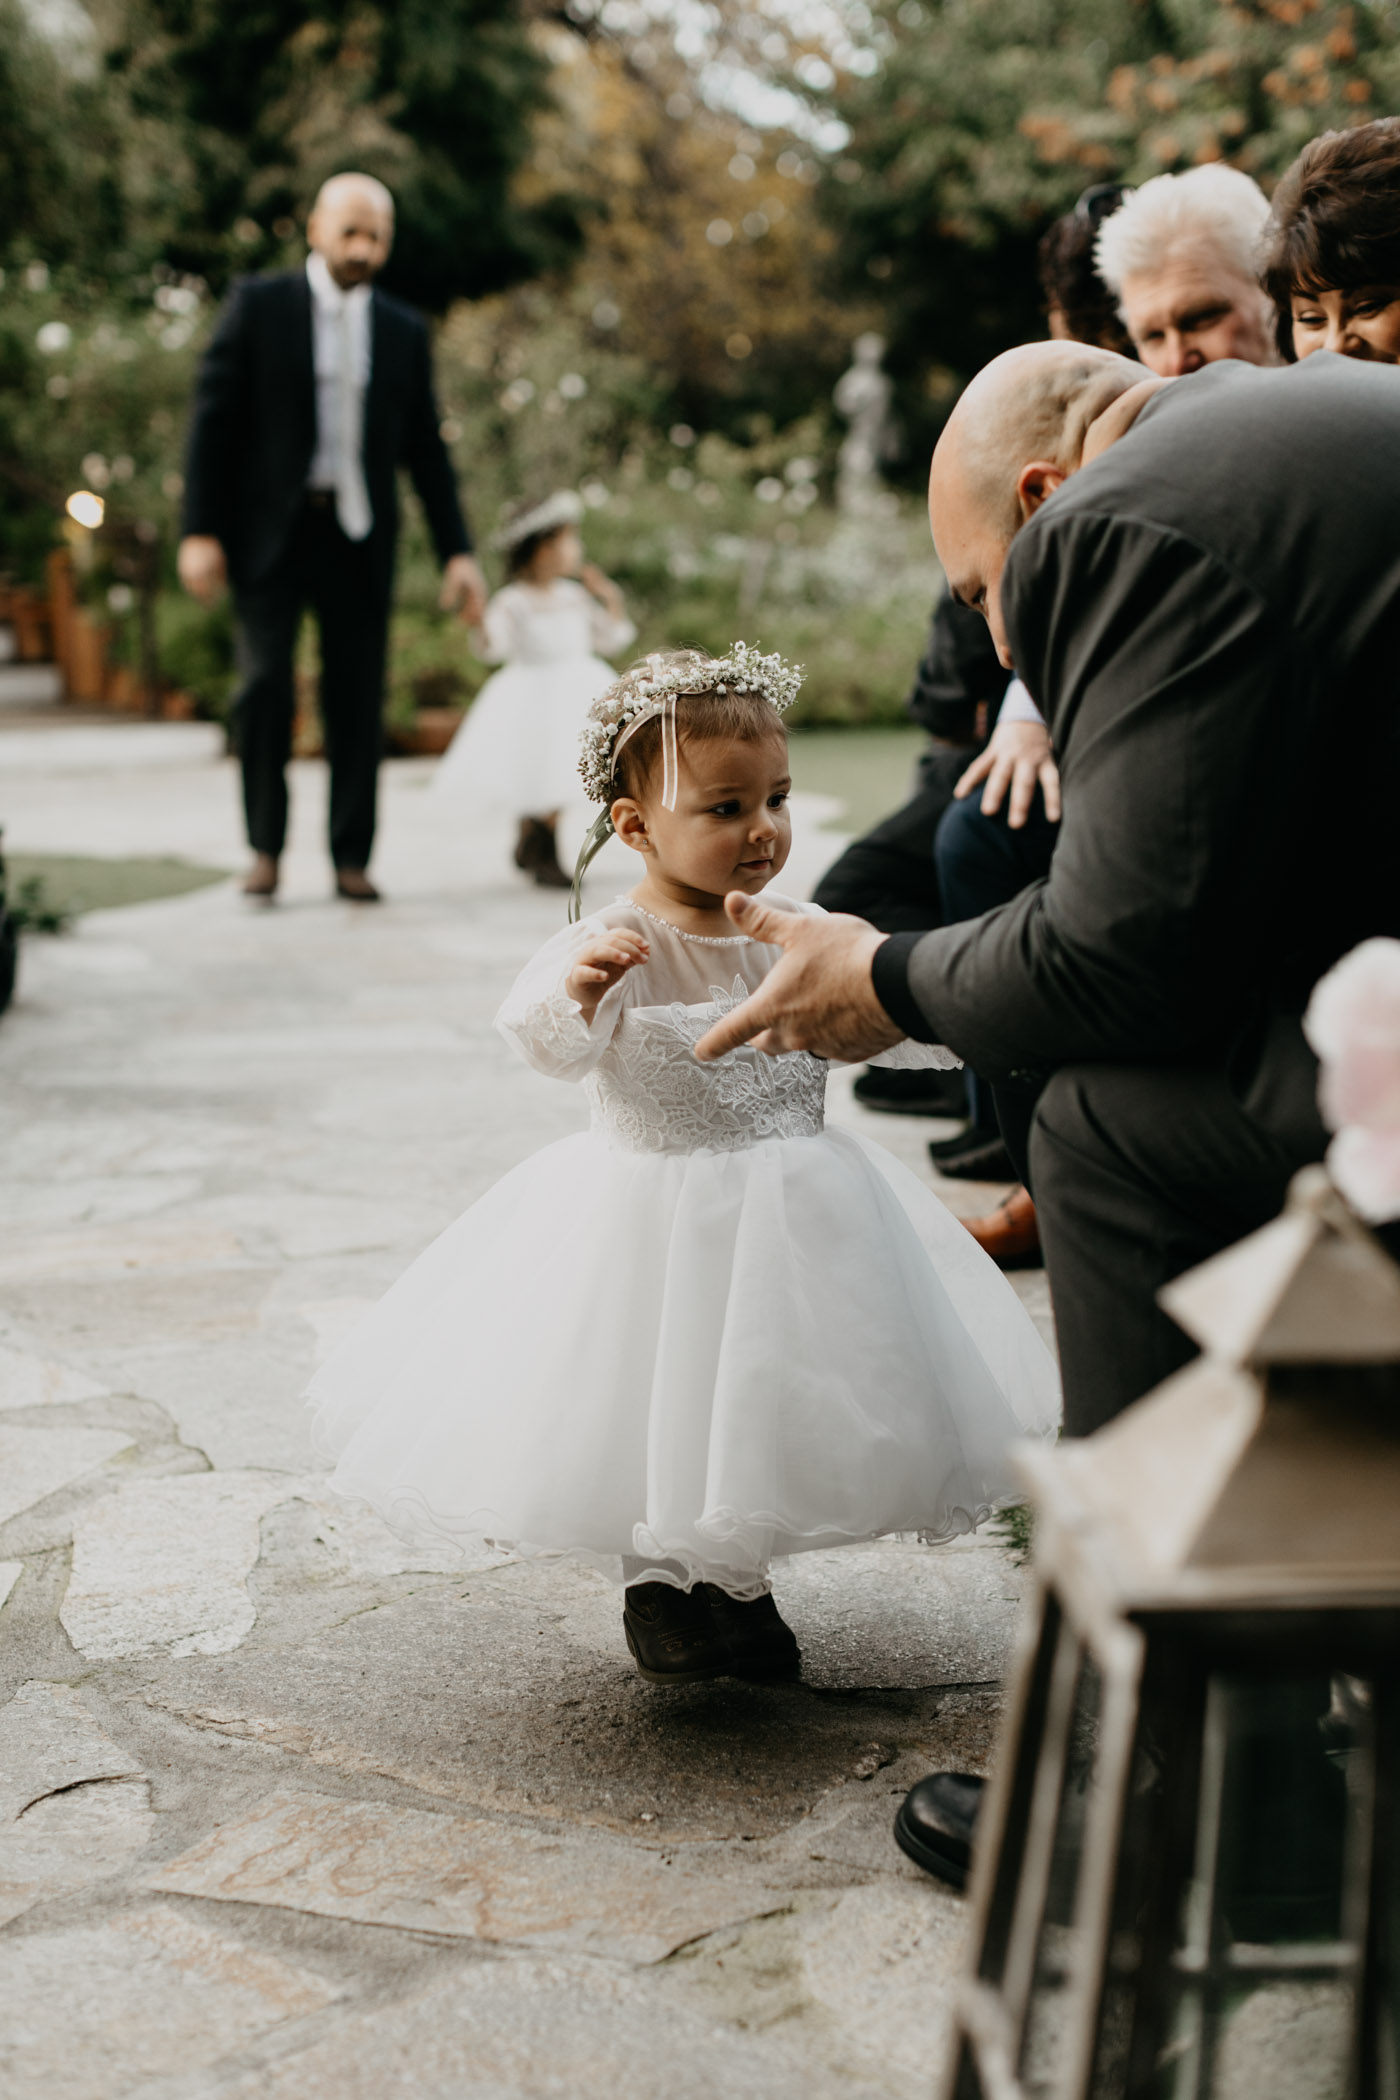 Young flower girl getting distracted as she walks down the aisle on wedding day